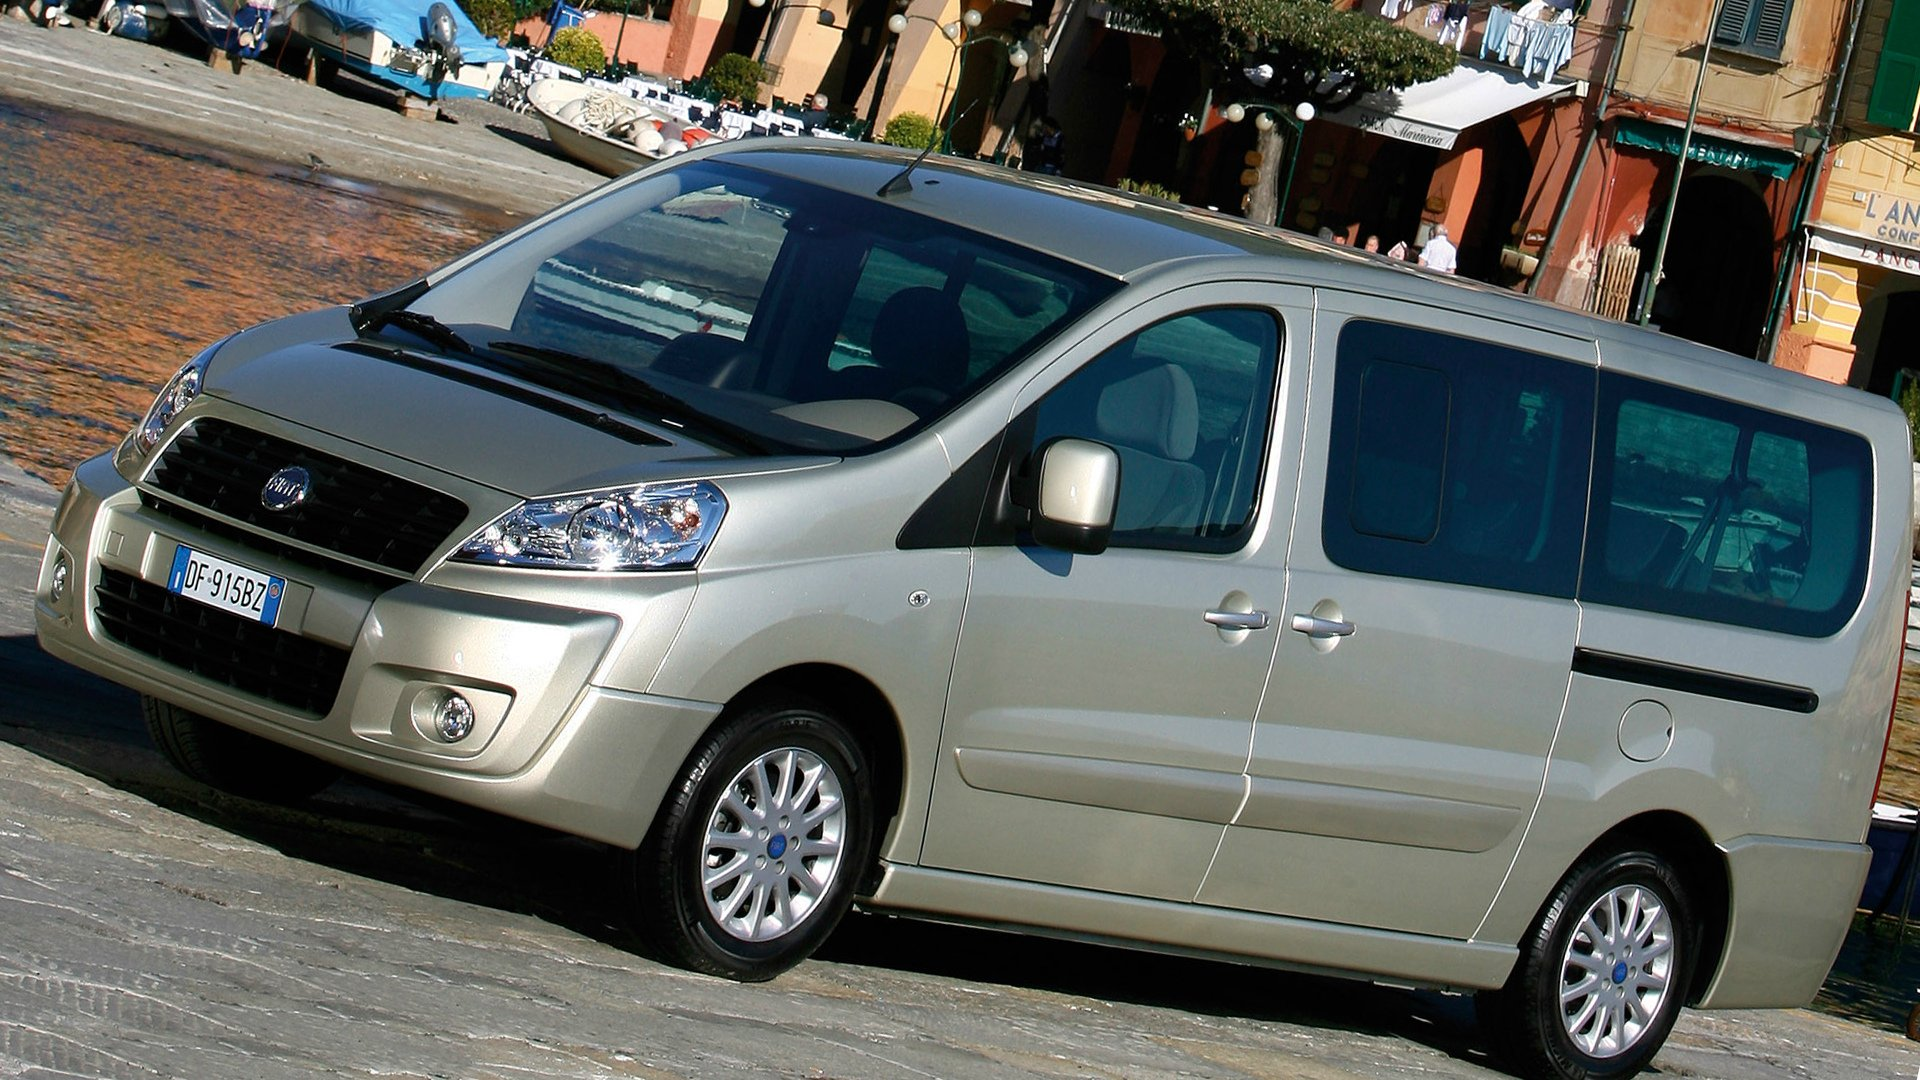 New 2019 FIAT Scudo First Pictures